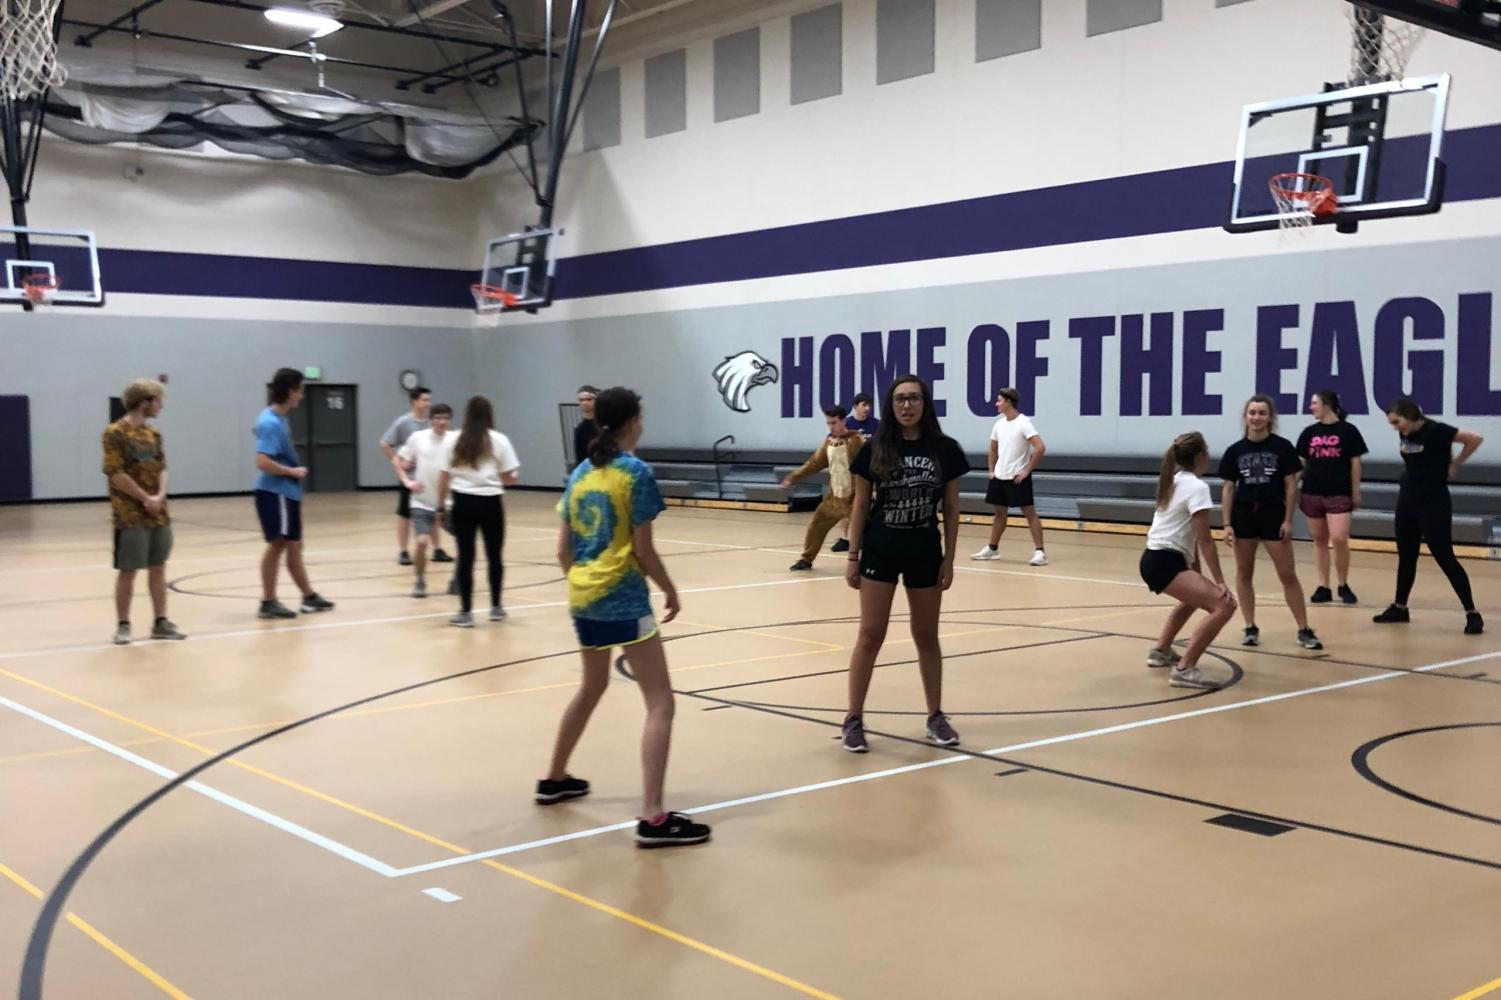 ZUMBA- Mrs. Olson's Lifetime Activities class busts some moves and breaks a sweat by following a Zumba teacher last week.